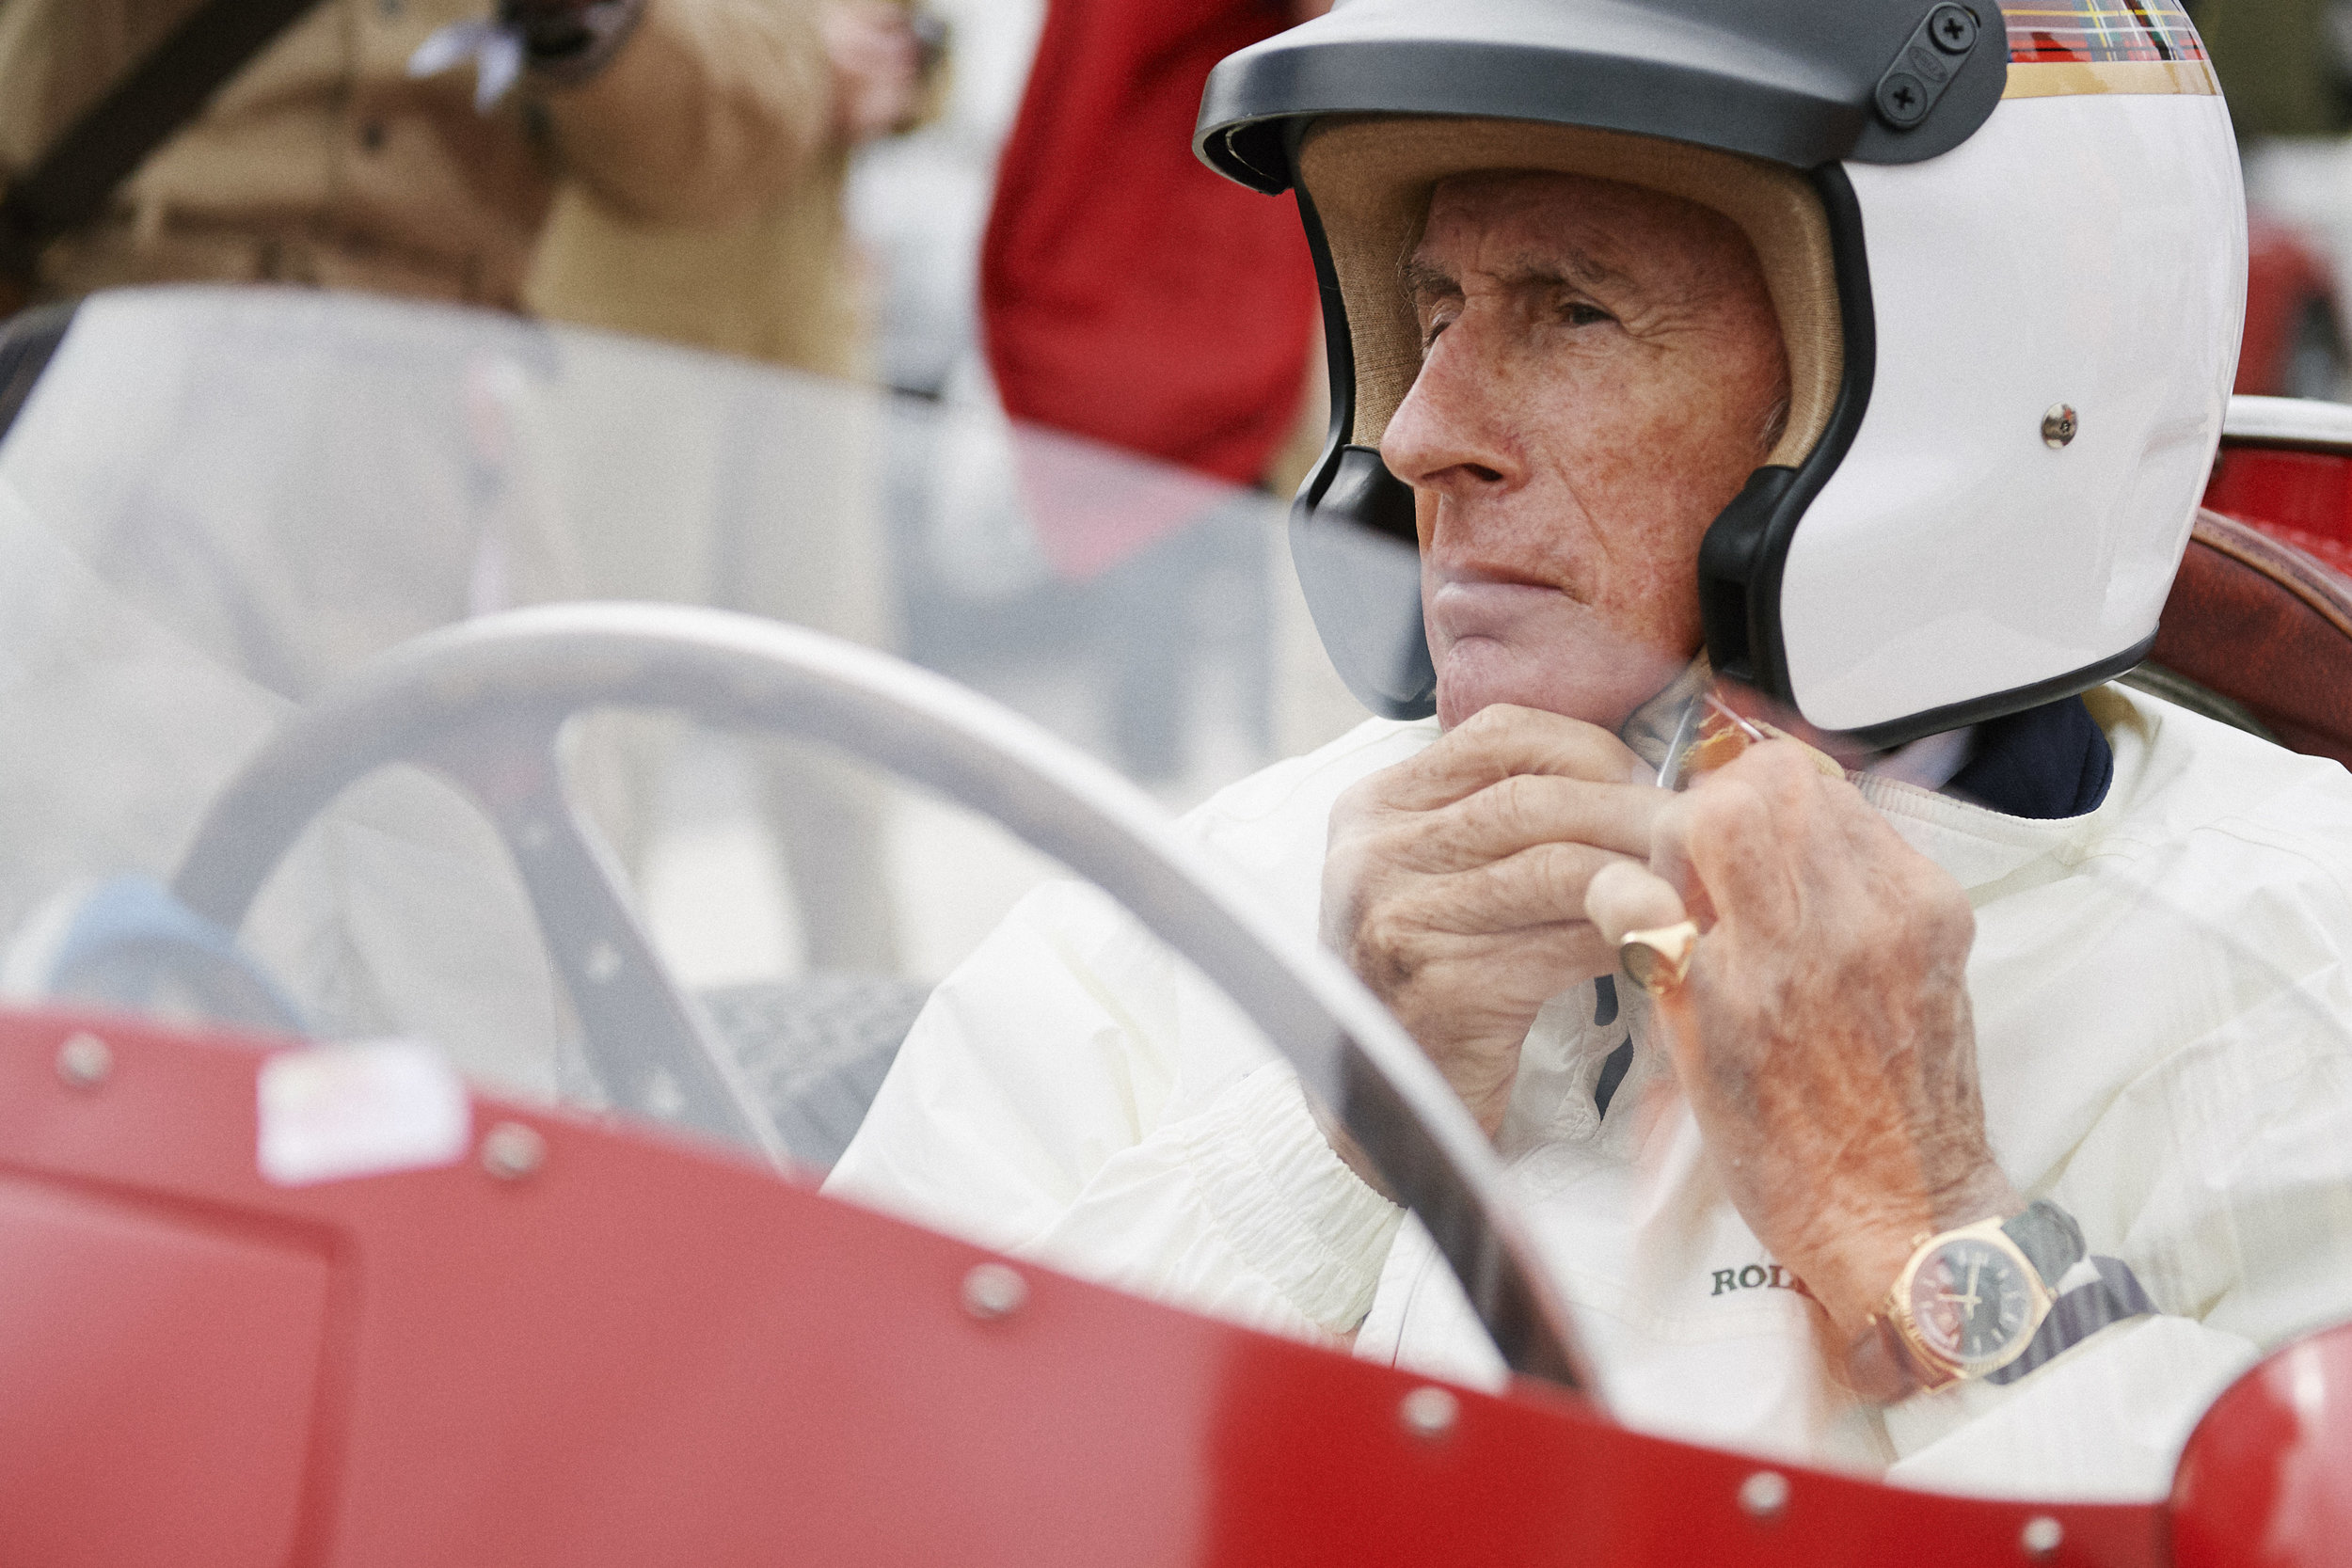 ©Rolex/Guillaume Mégevand ROLEX TESTIMONEE, SIR JACKIE STEWART BEFORE THE GOODWOOD REVIVAL 1957 BRITISH GRAND PRIX CELEBRATION